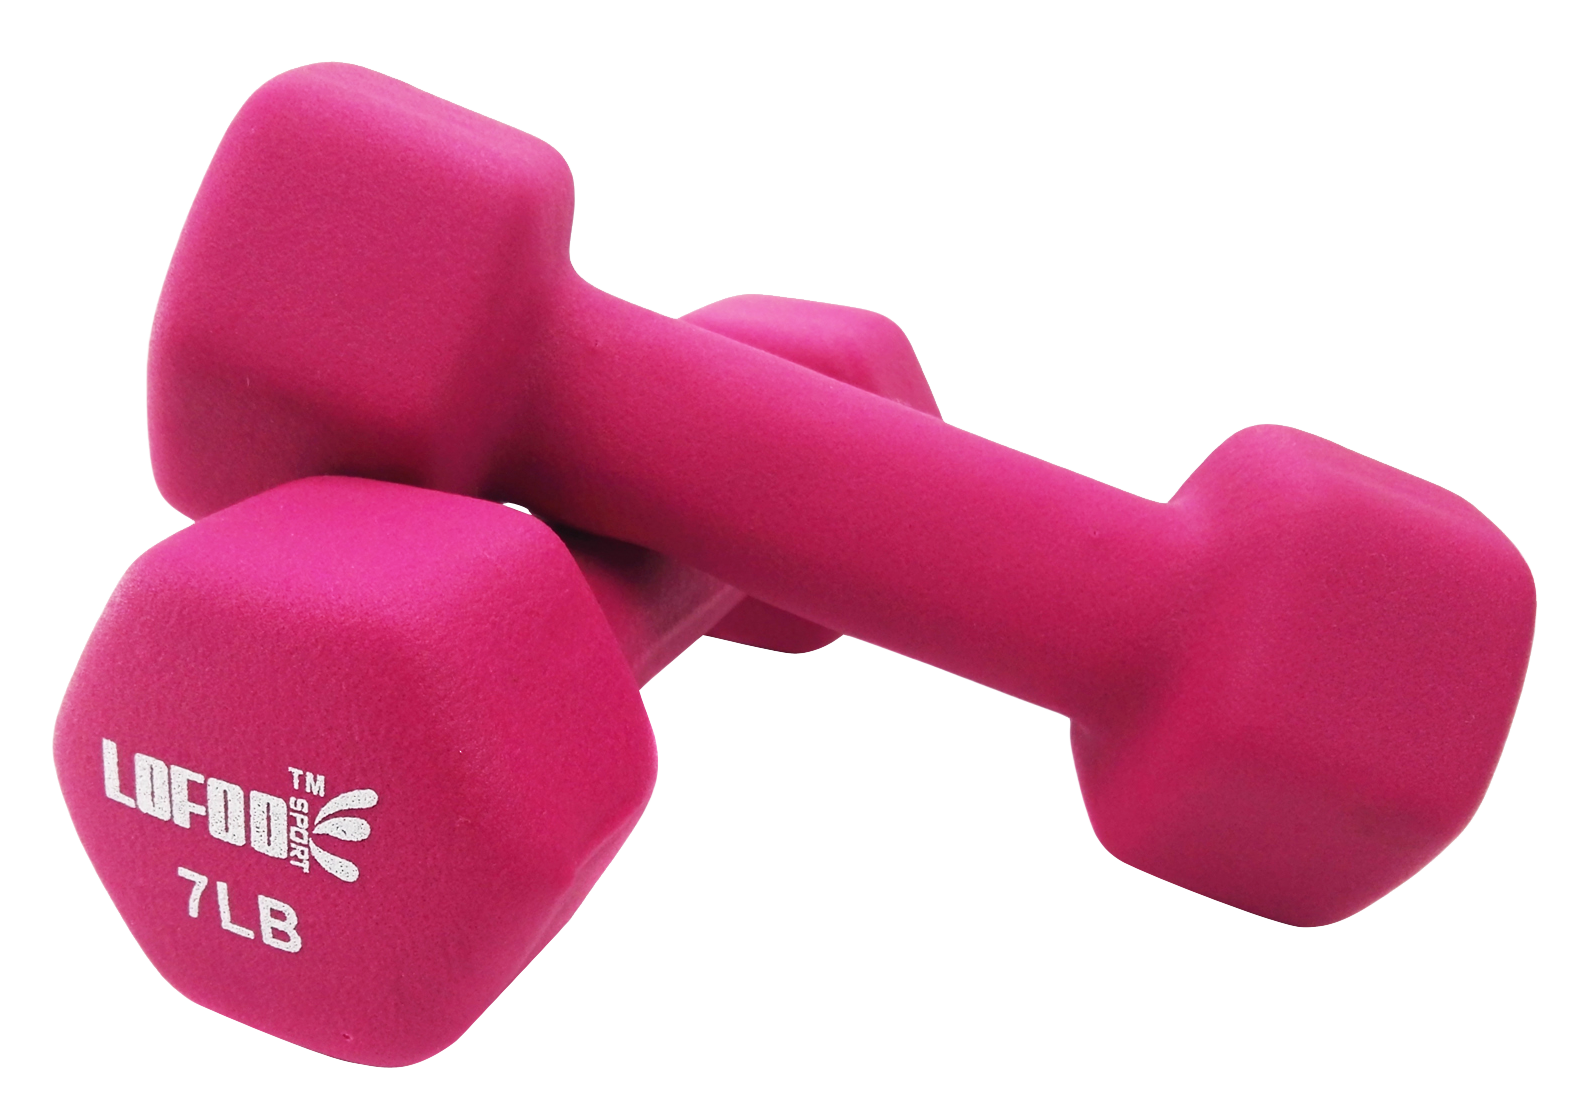 Dumbbells png images pngpix. Weight clipart pink dumbbell